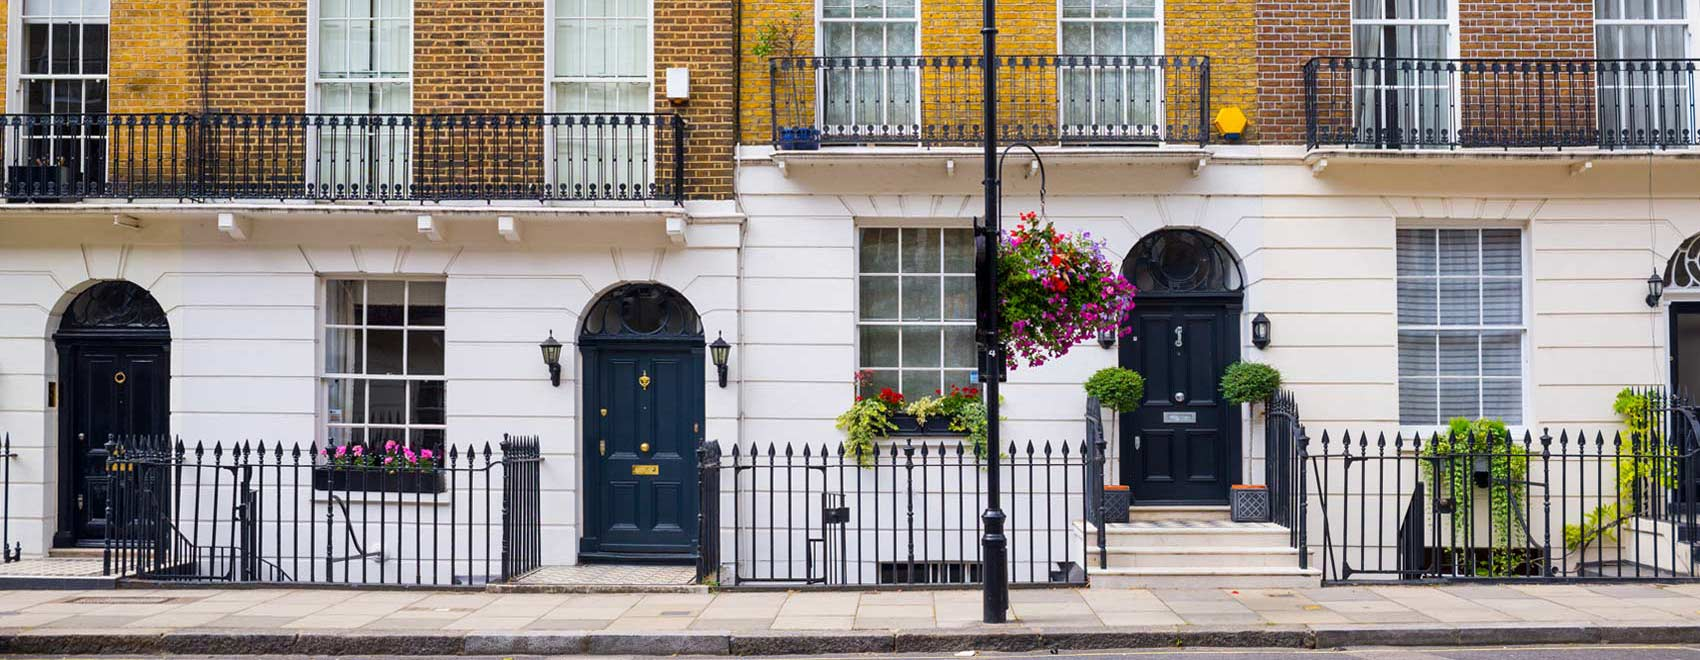 Marylebone Robert Bailey Property Spears 500 Independent Buying Agency London